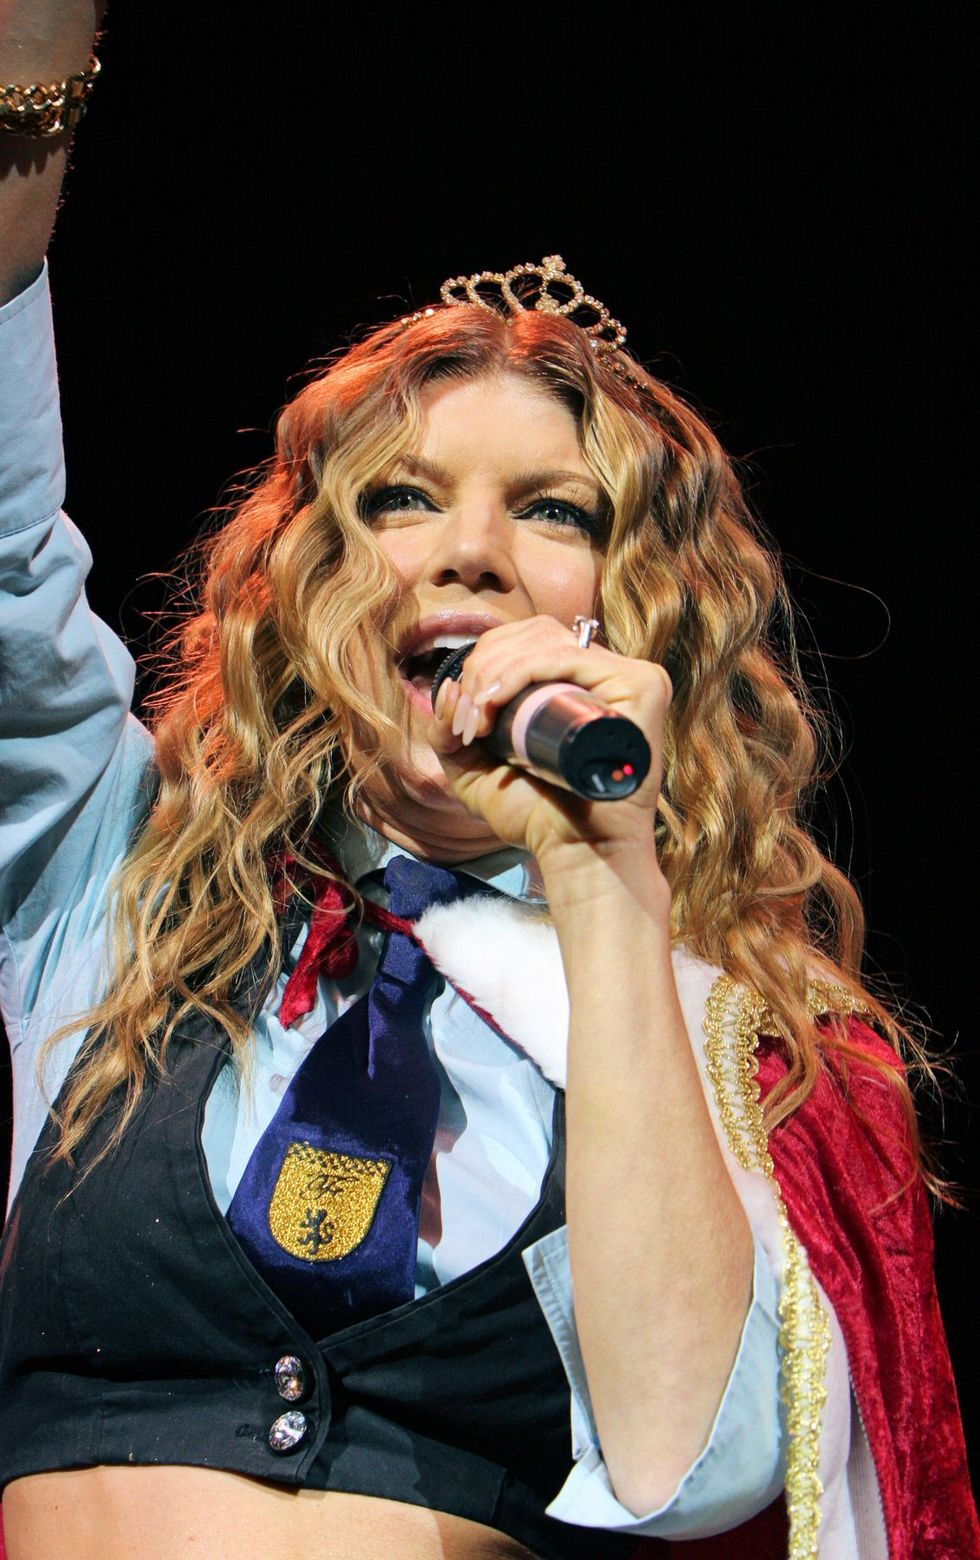 stacy-fergie-ferguson-onstage-at-la-borgata-in-atlantic-city-01